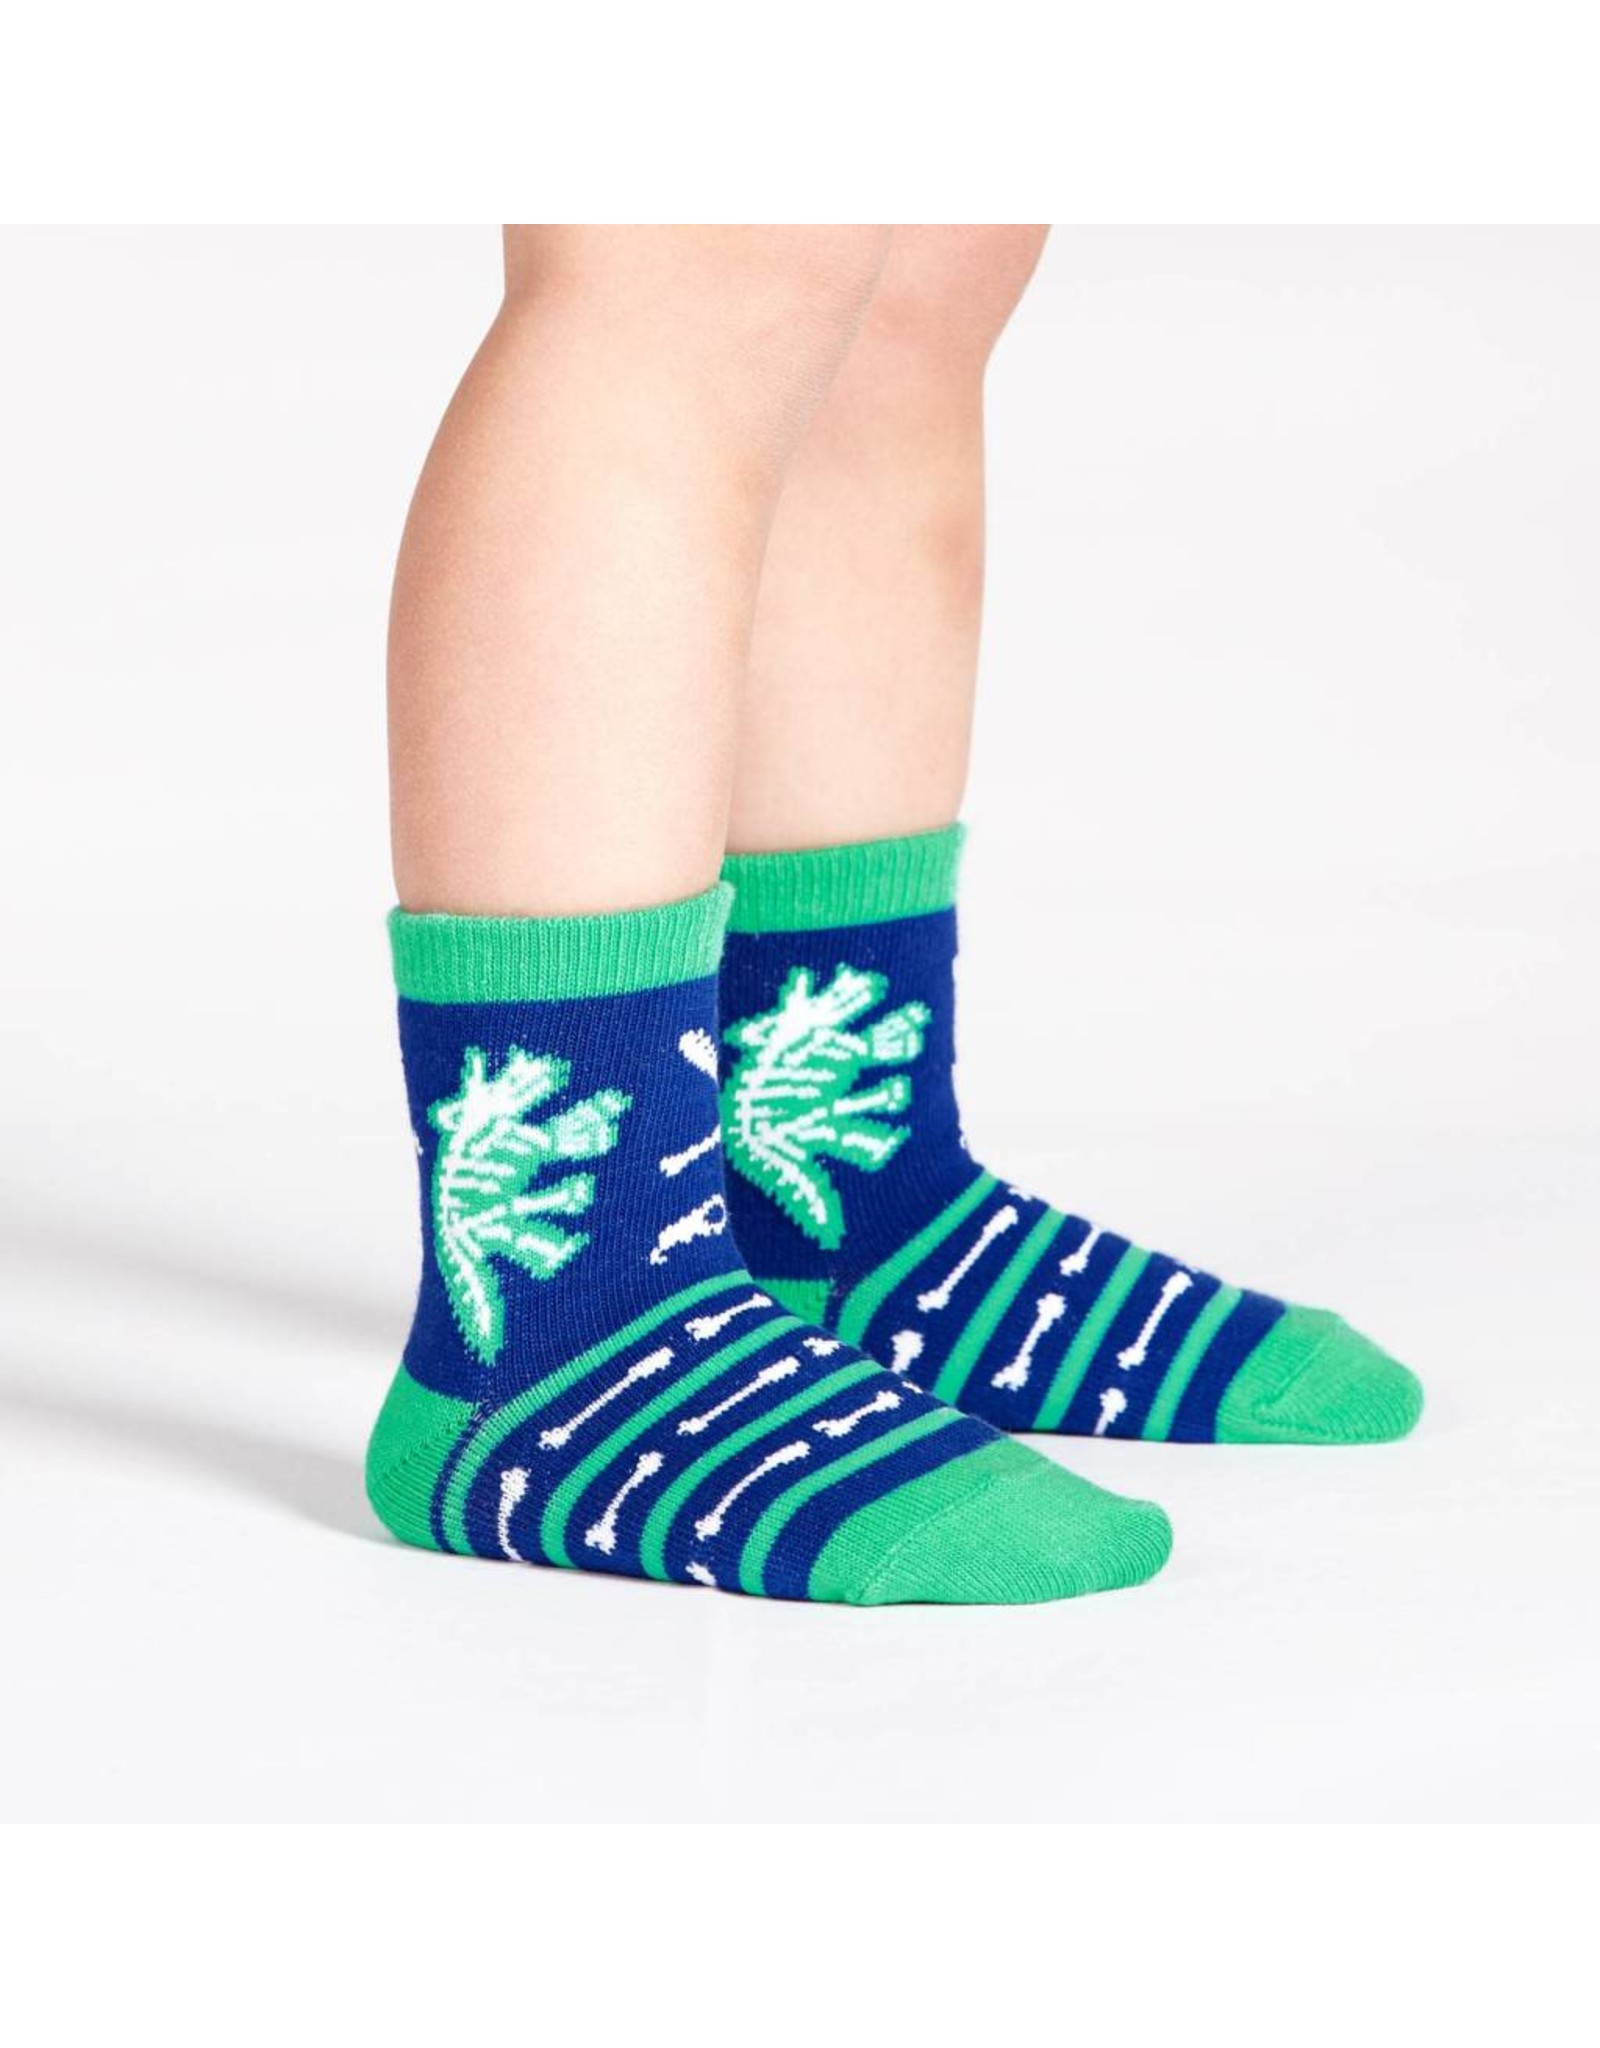 SOCK IT TO ME - Toddler Arch-eology Crew Socks